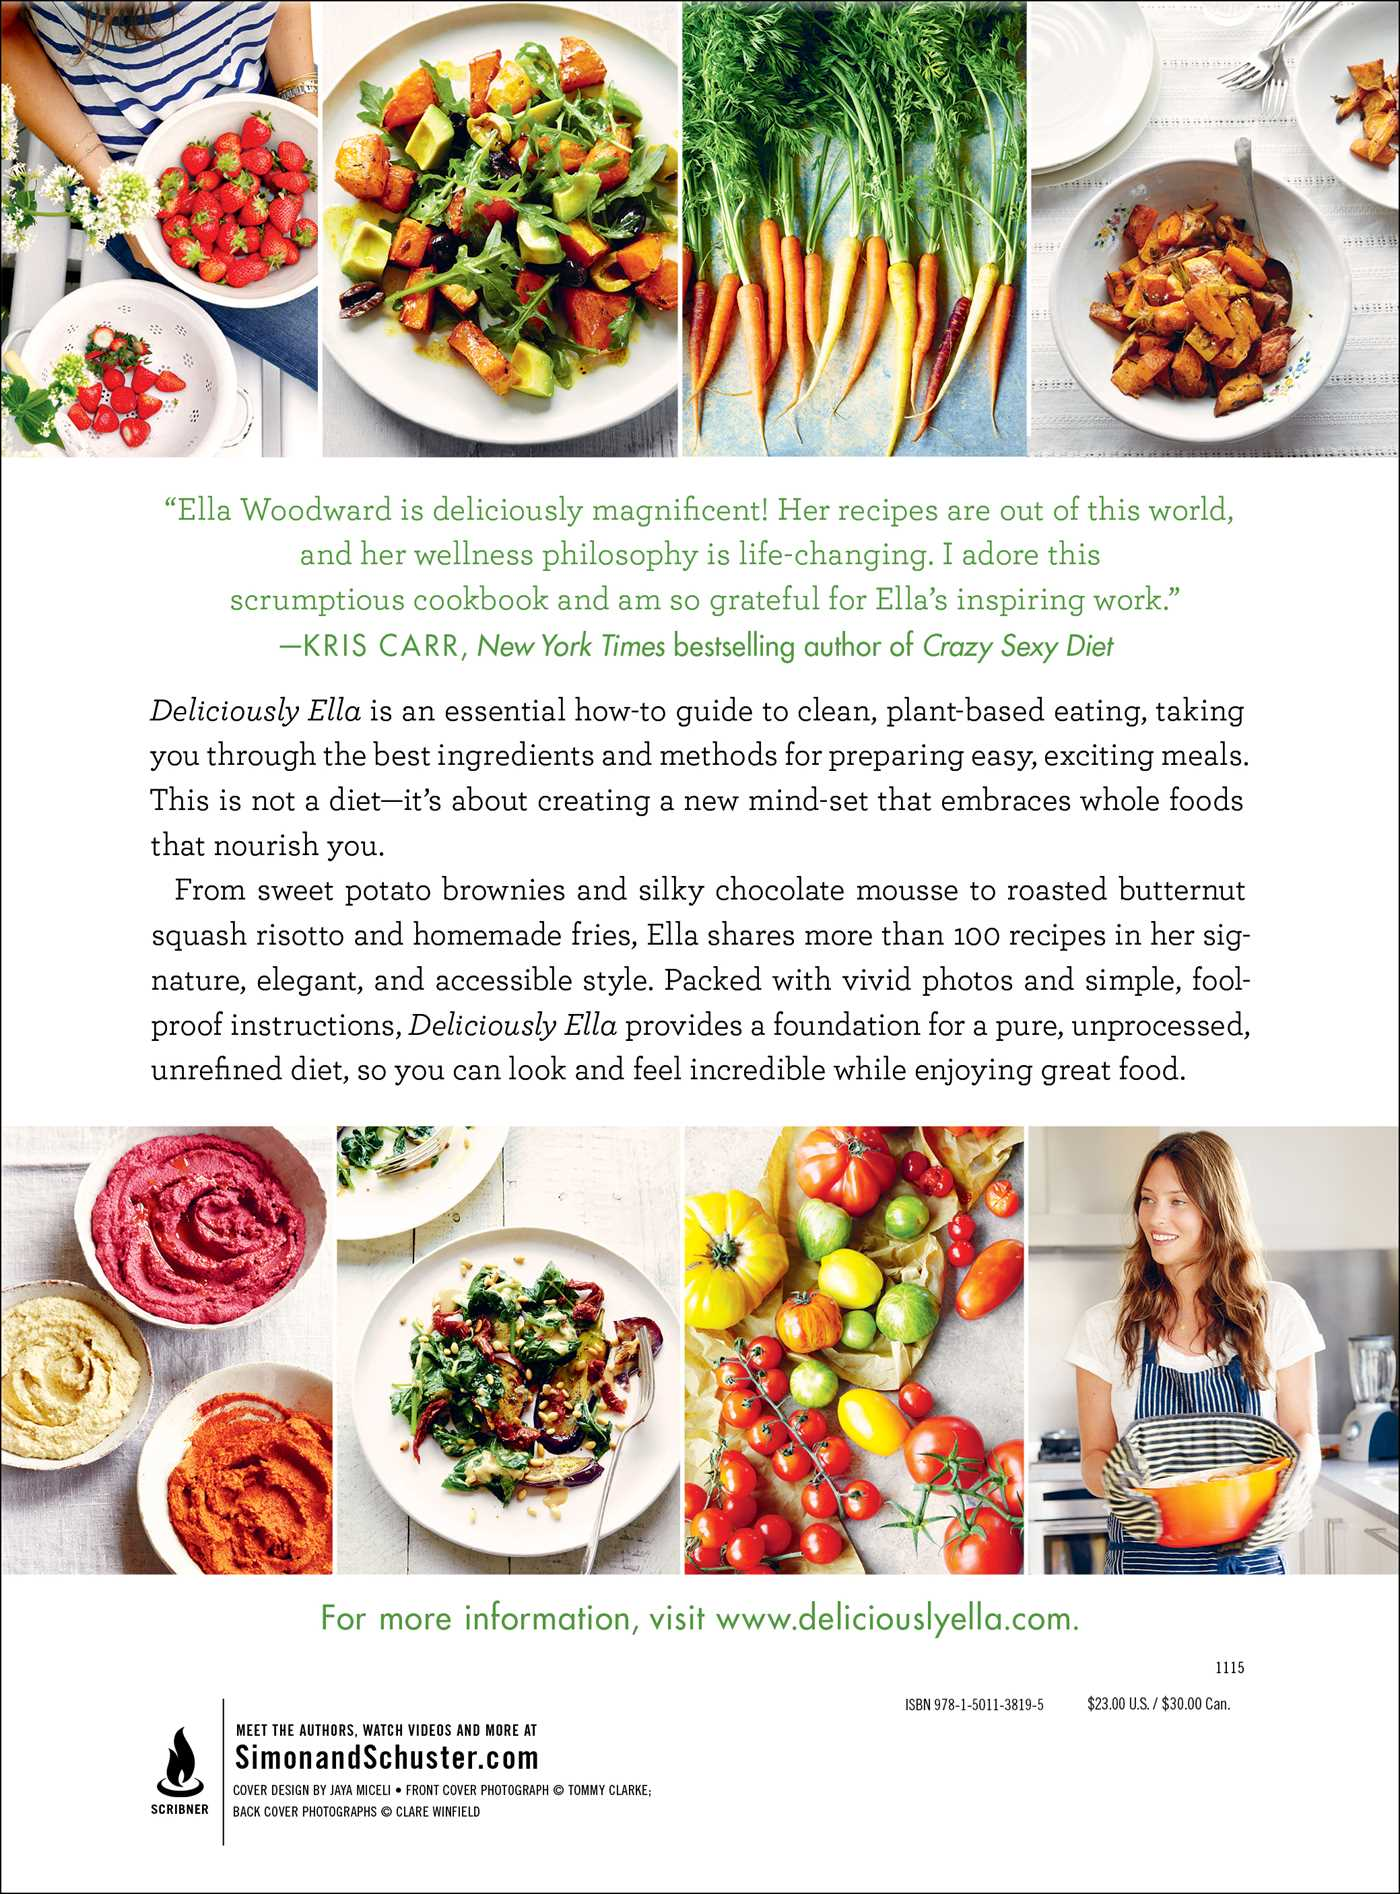 Deliciously ella 9781501138195 hr back